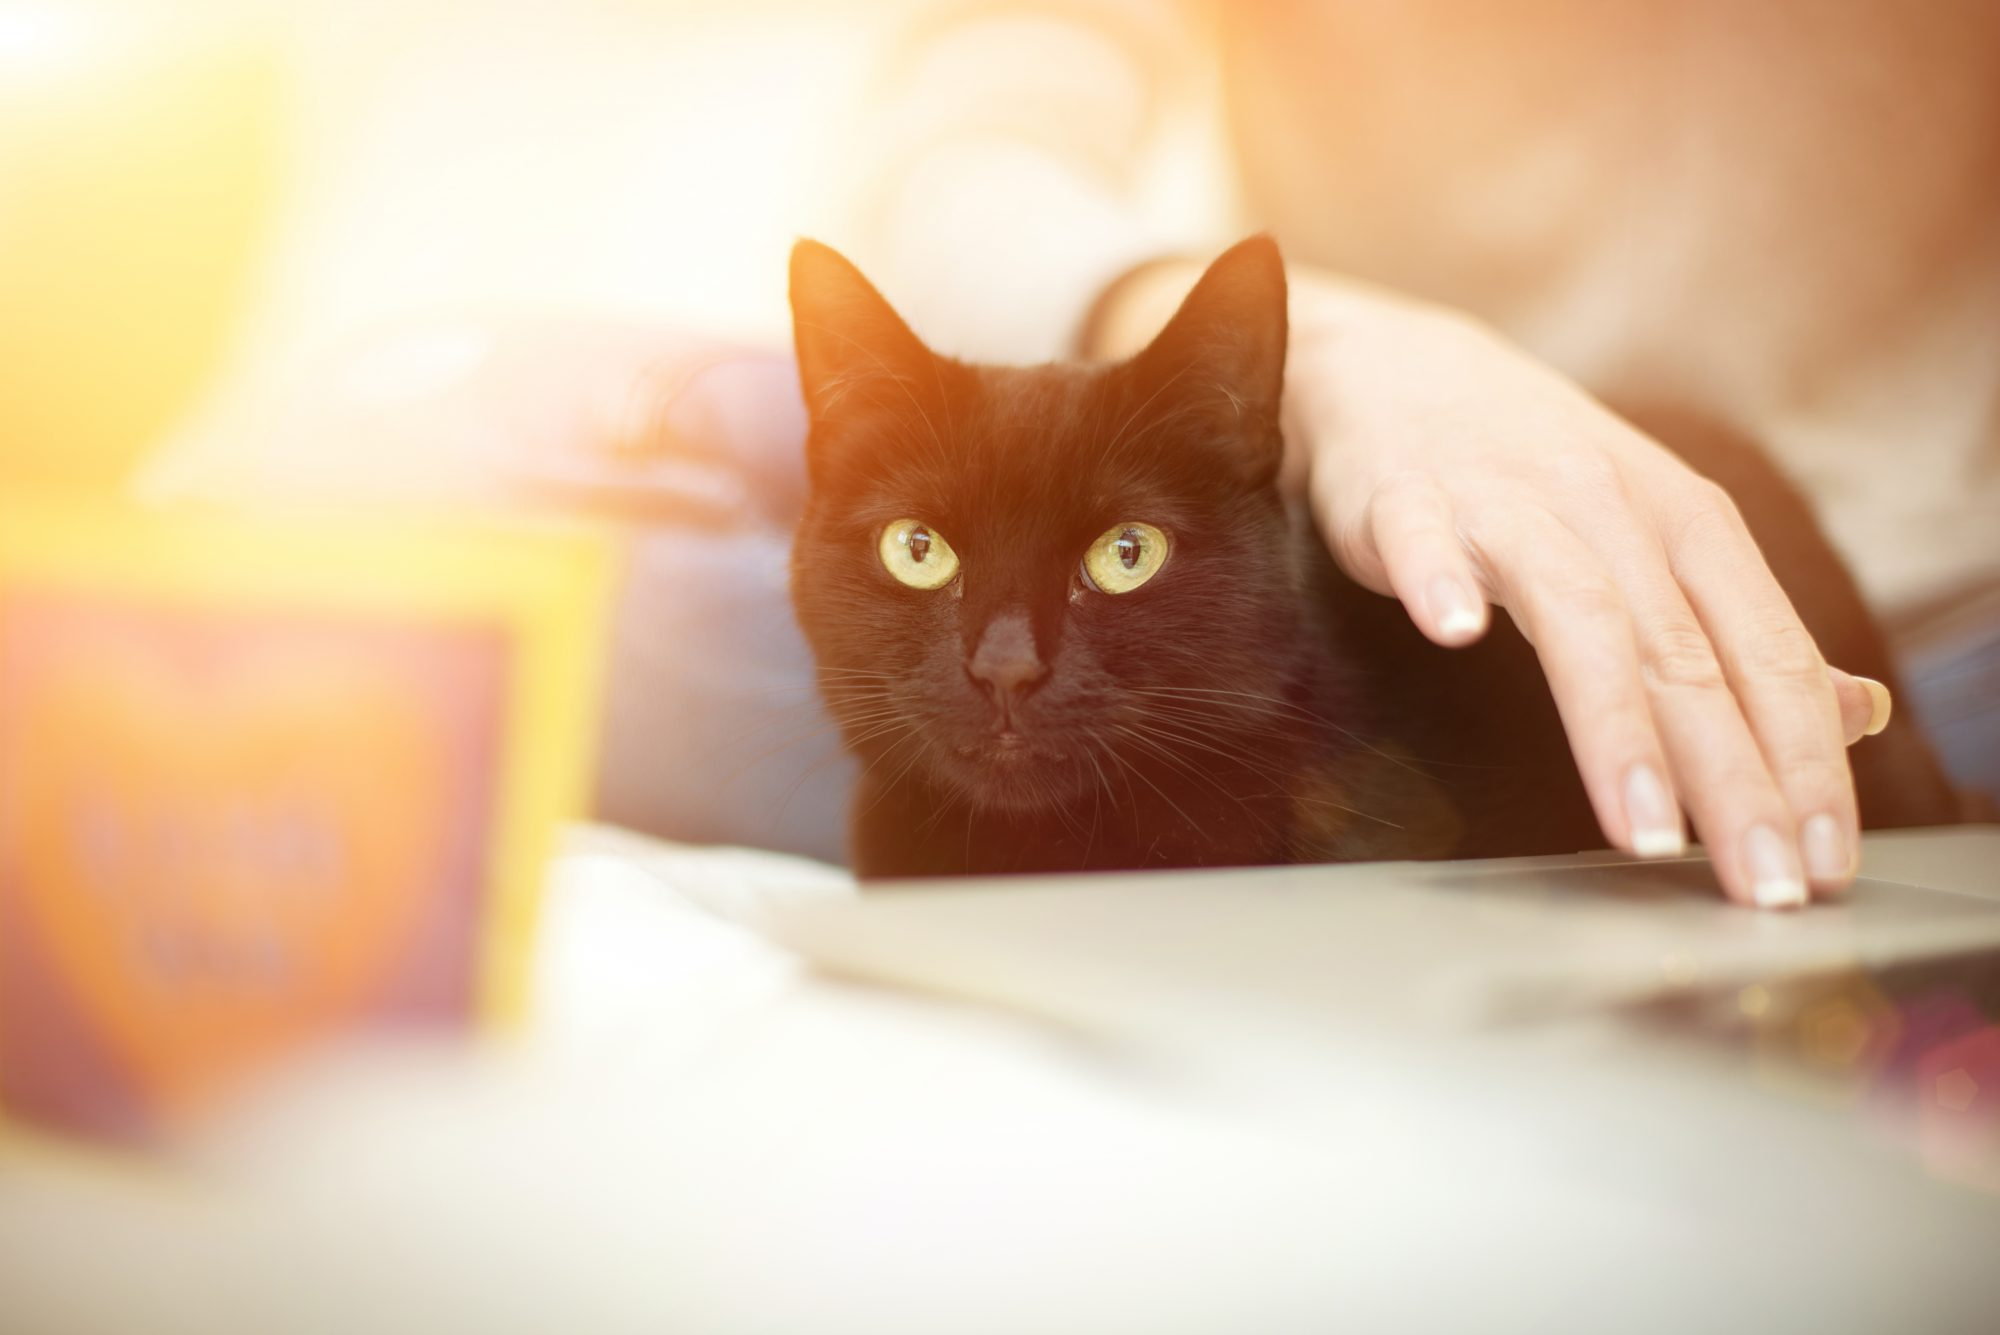 Pet health information online isn't always credible. Call a local veterinarian.